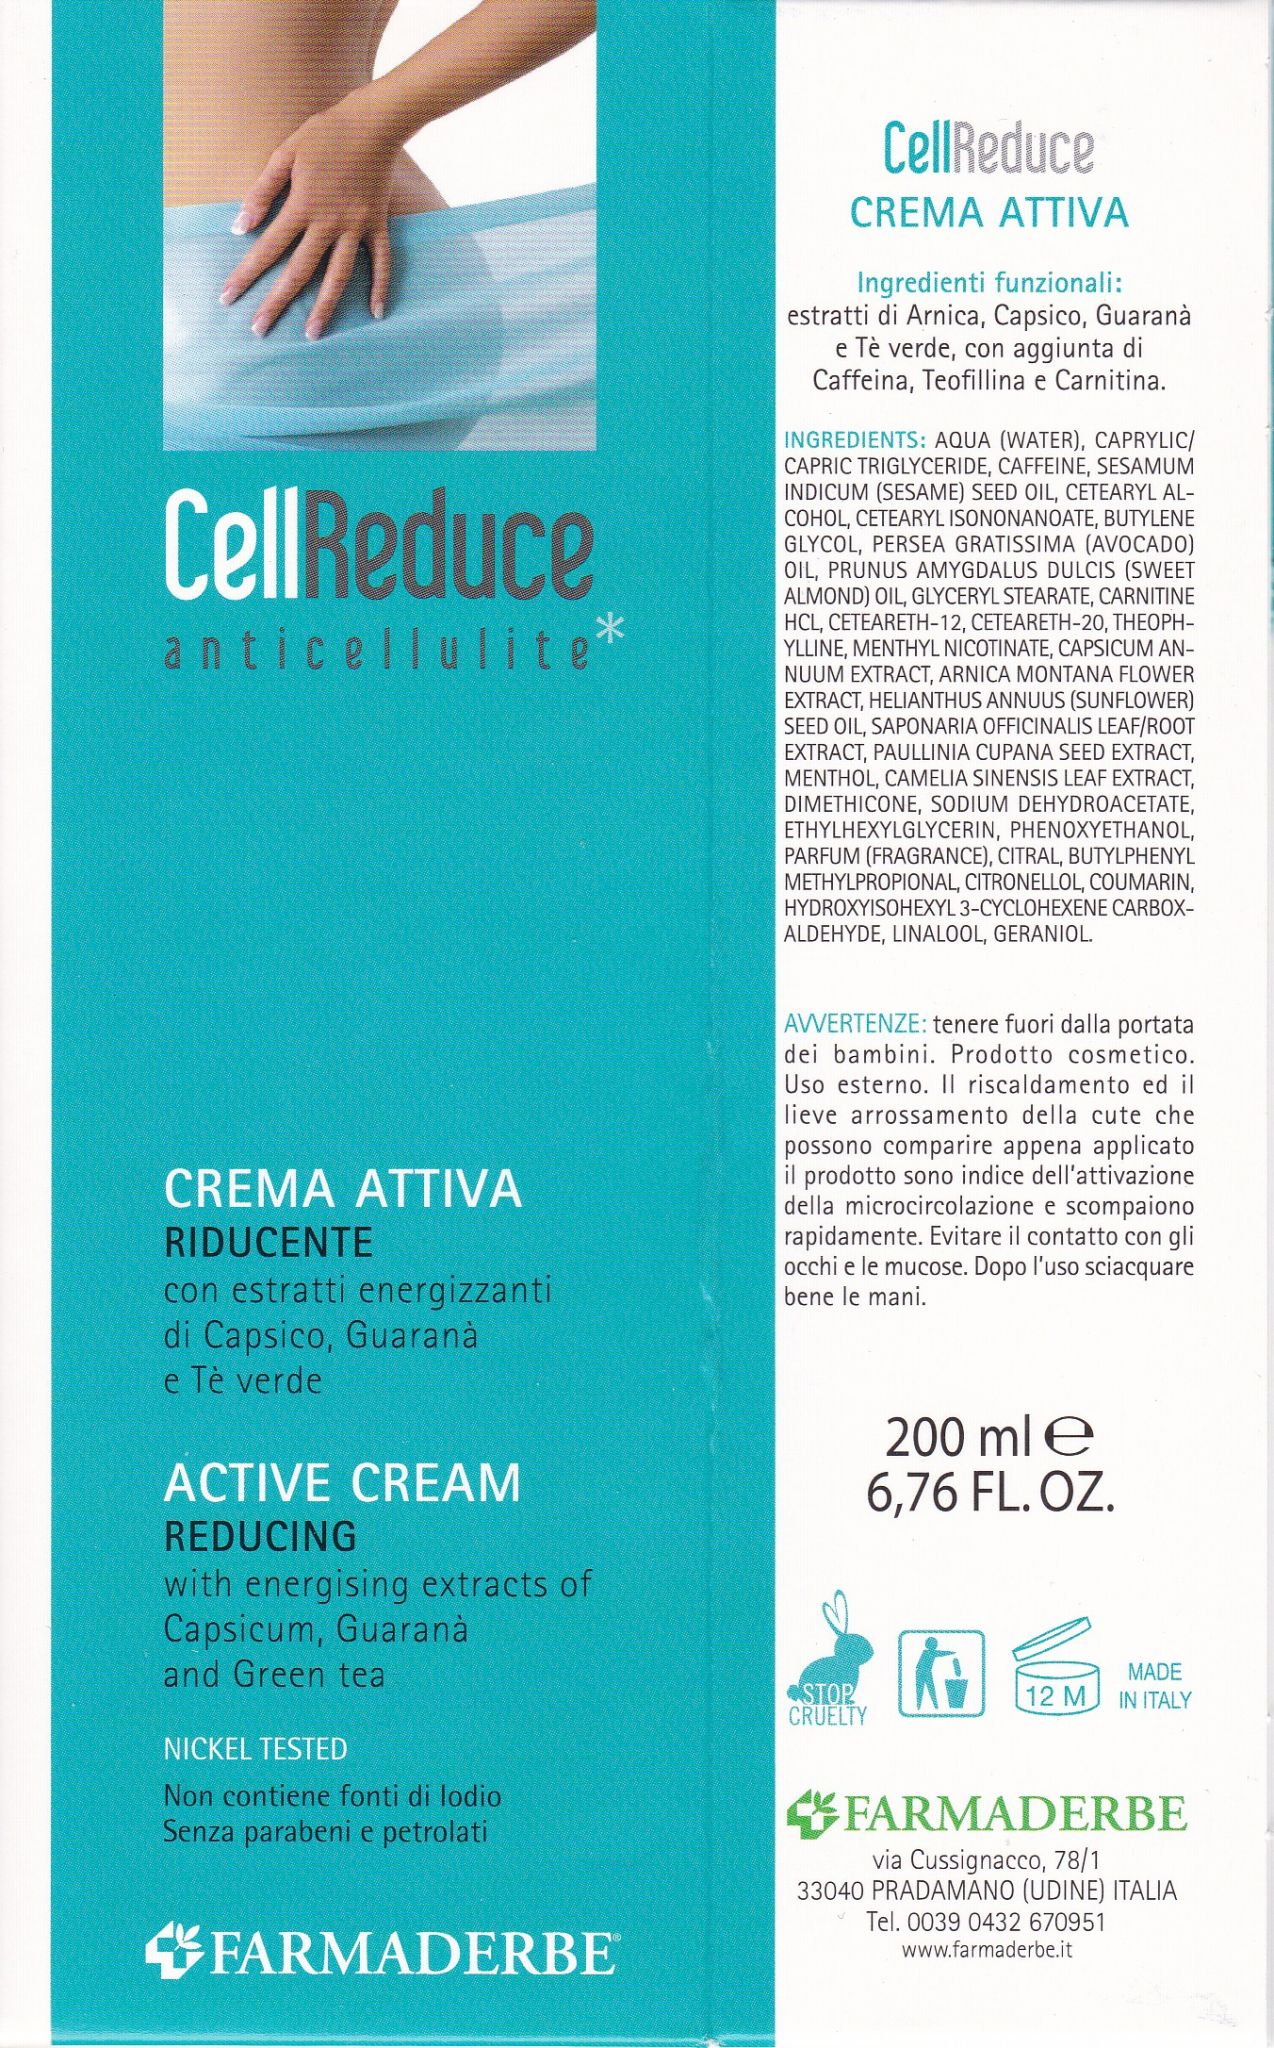 FARMADERBE CELL  CREMA  REDUCE  anticellulite